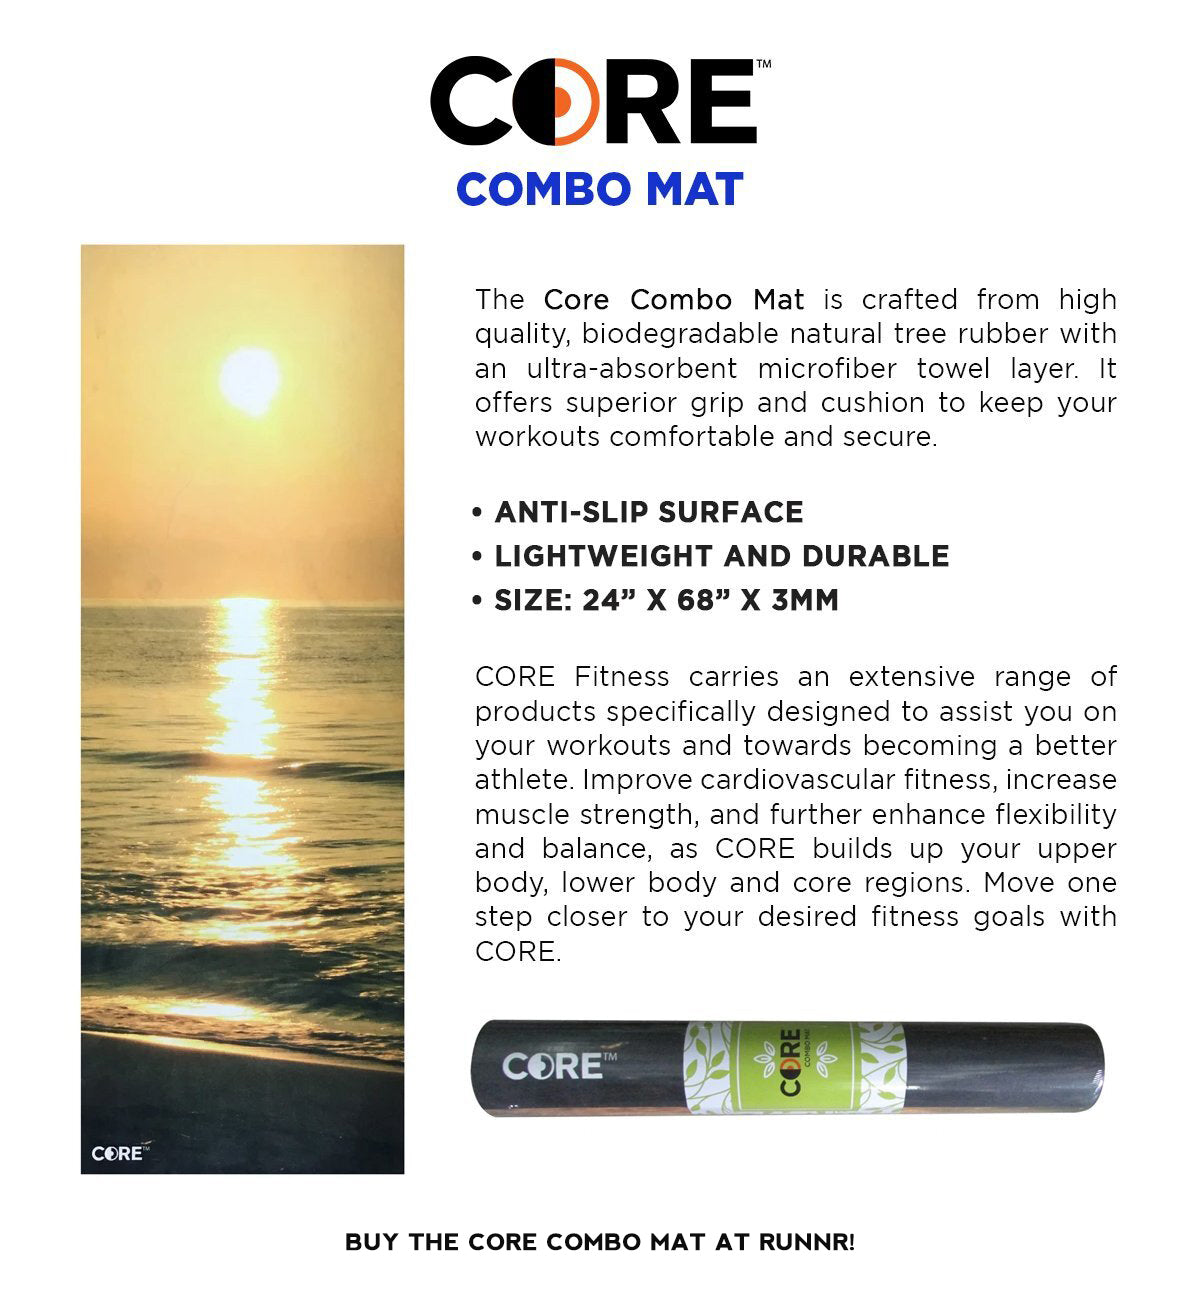 Core yoga mat is crafted from high quality, biodegradable natural tree rubber with an ultra-absorbent microfbiber layer